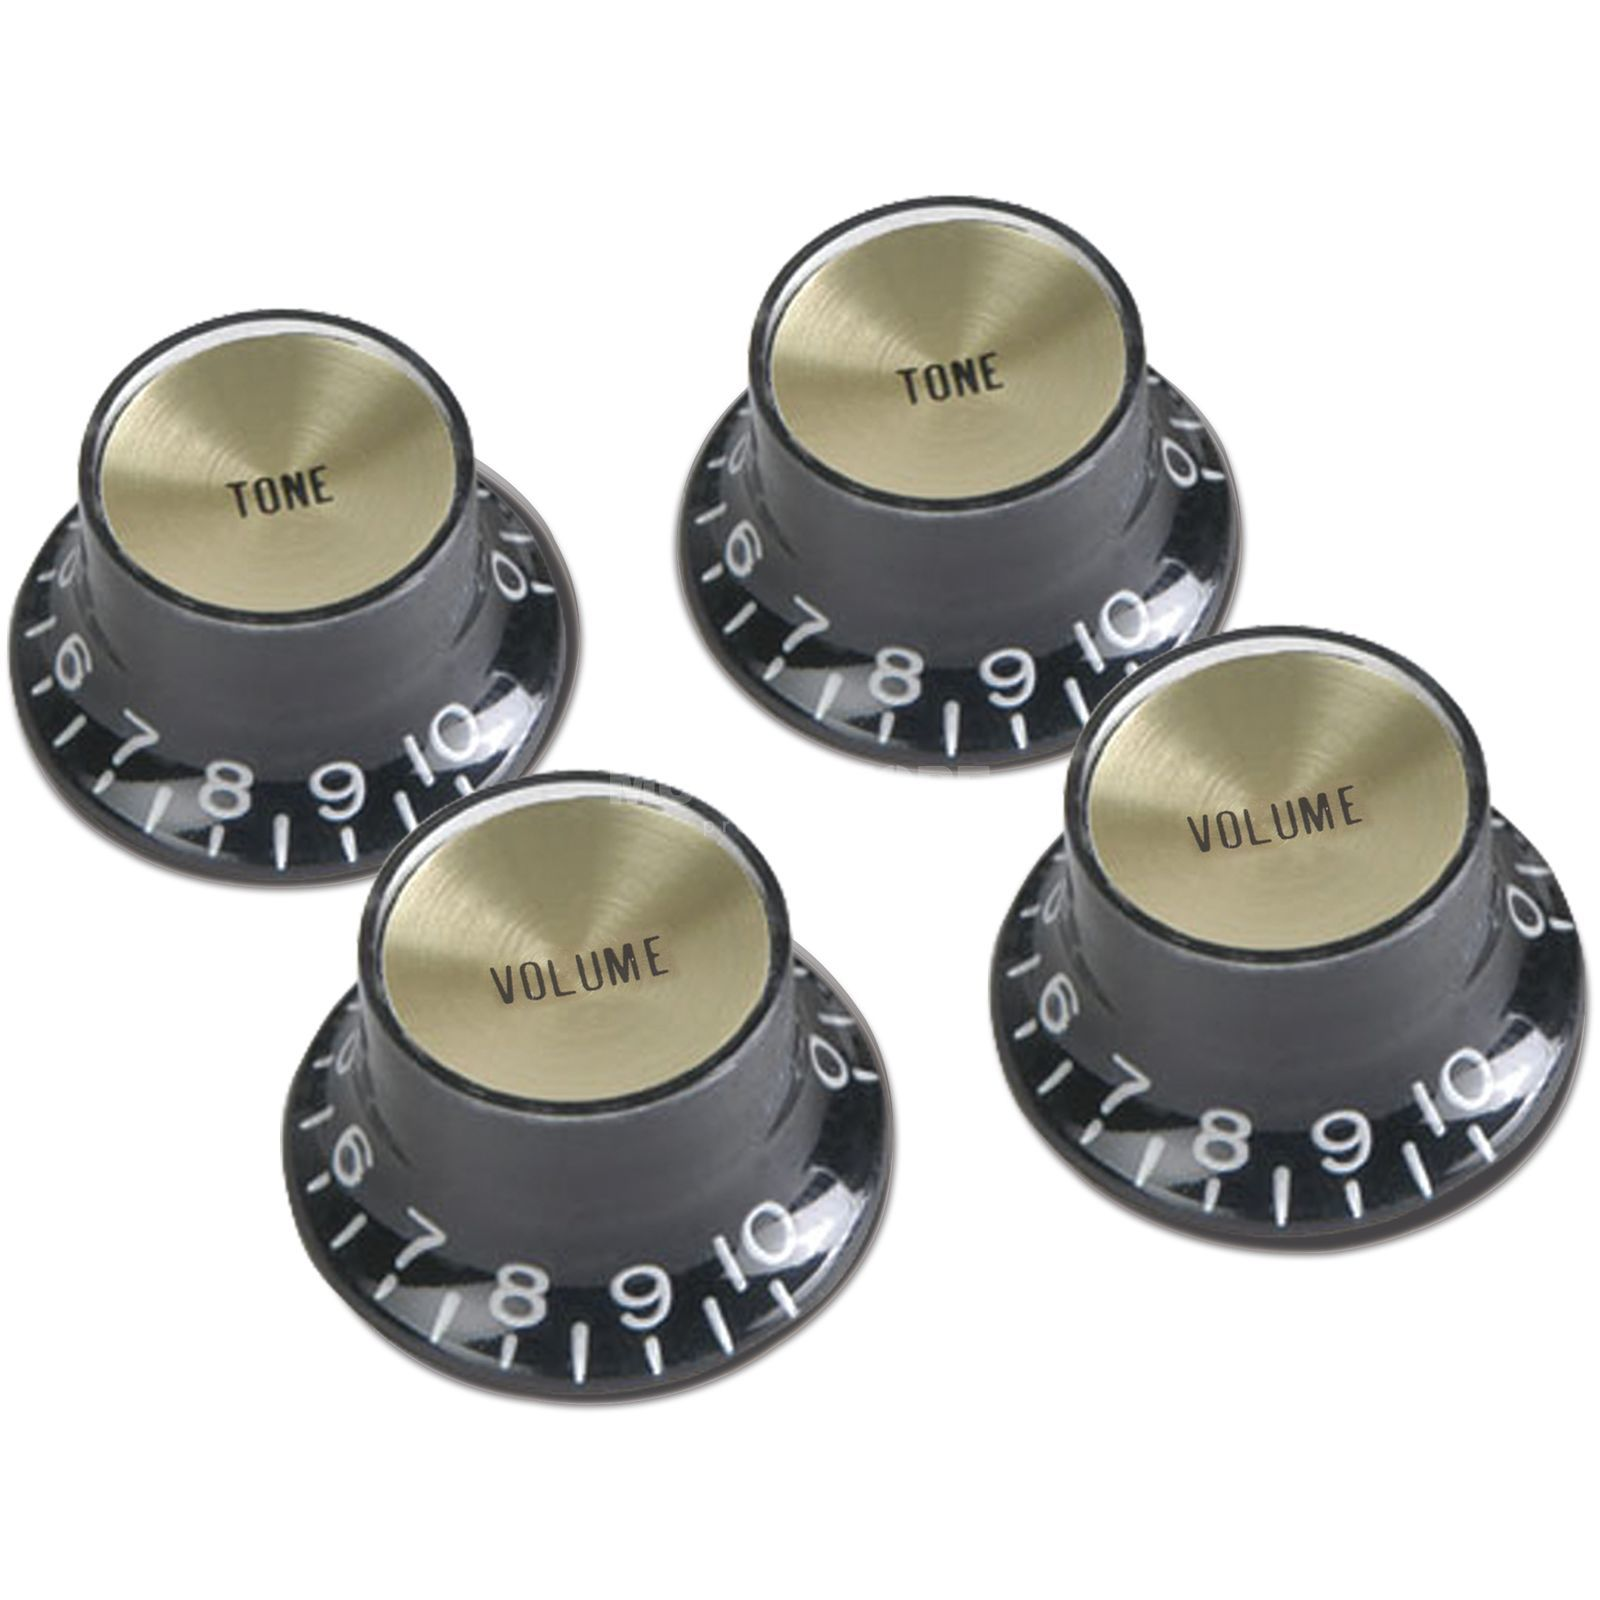 Gibson PRMK-020 Top Hat Knob Black Set 4 St Metalleinlage Gold Produktbild